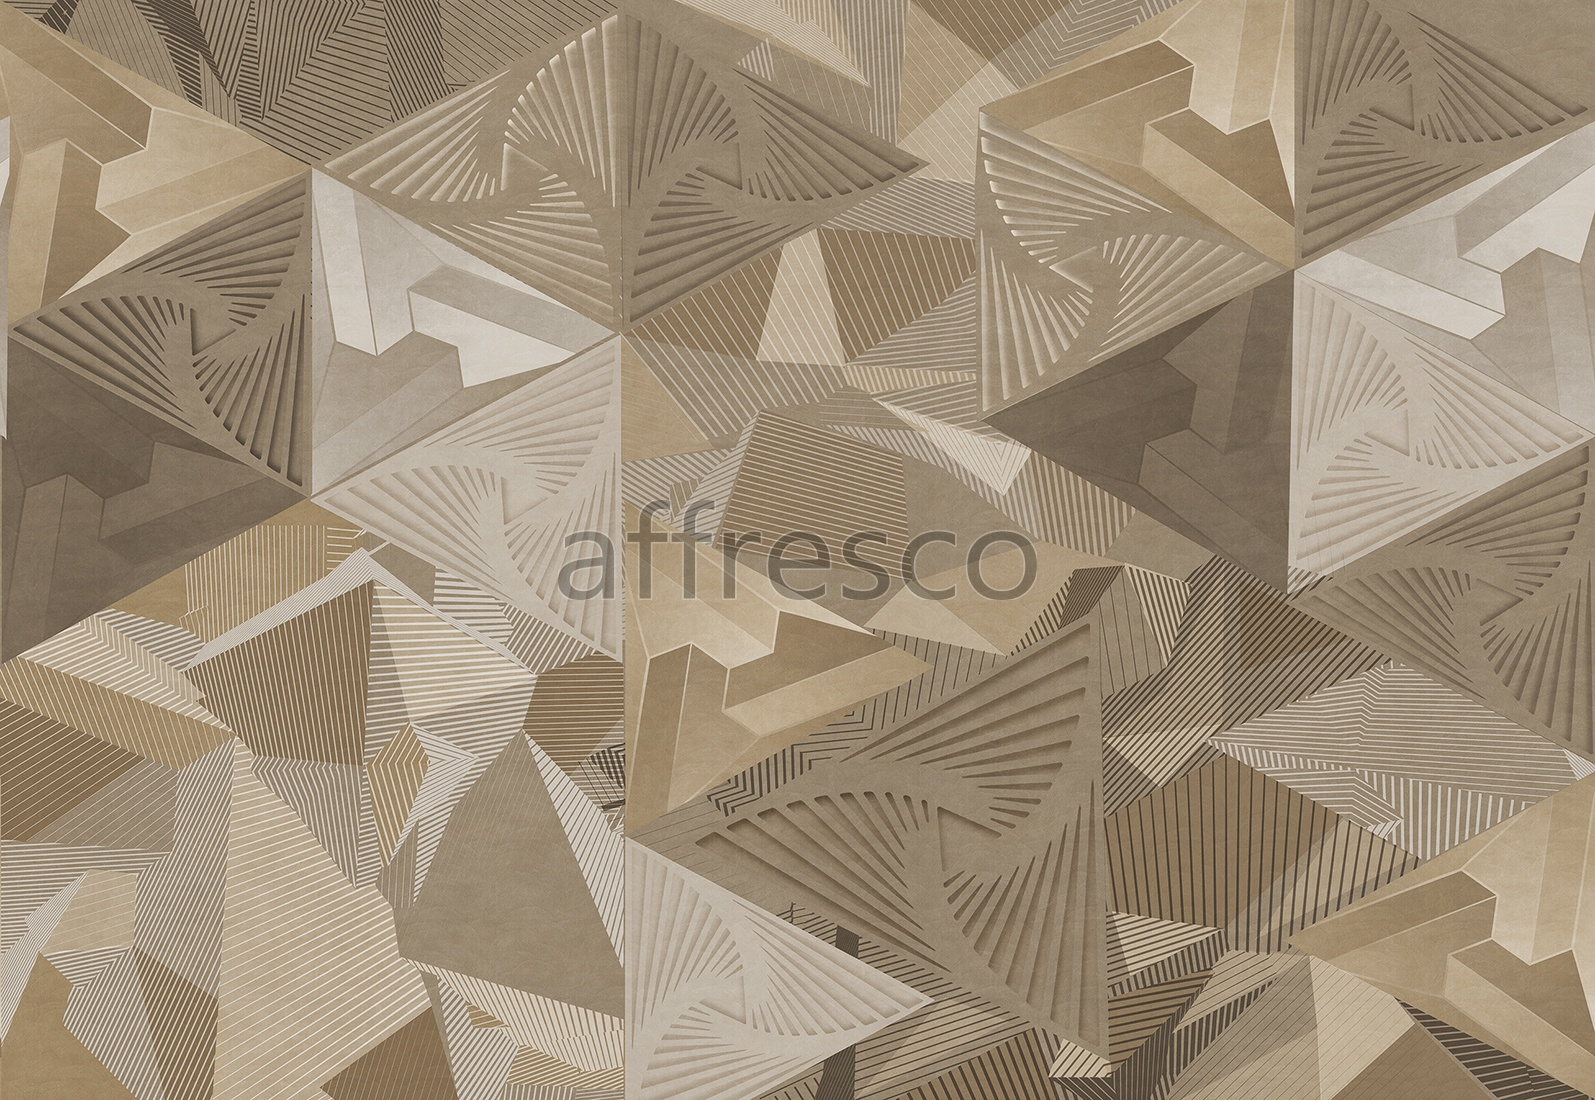 ID136346 | Geometry |  | Affresco Factory